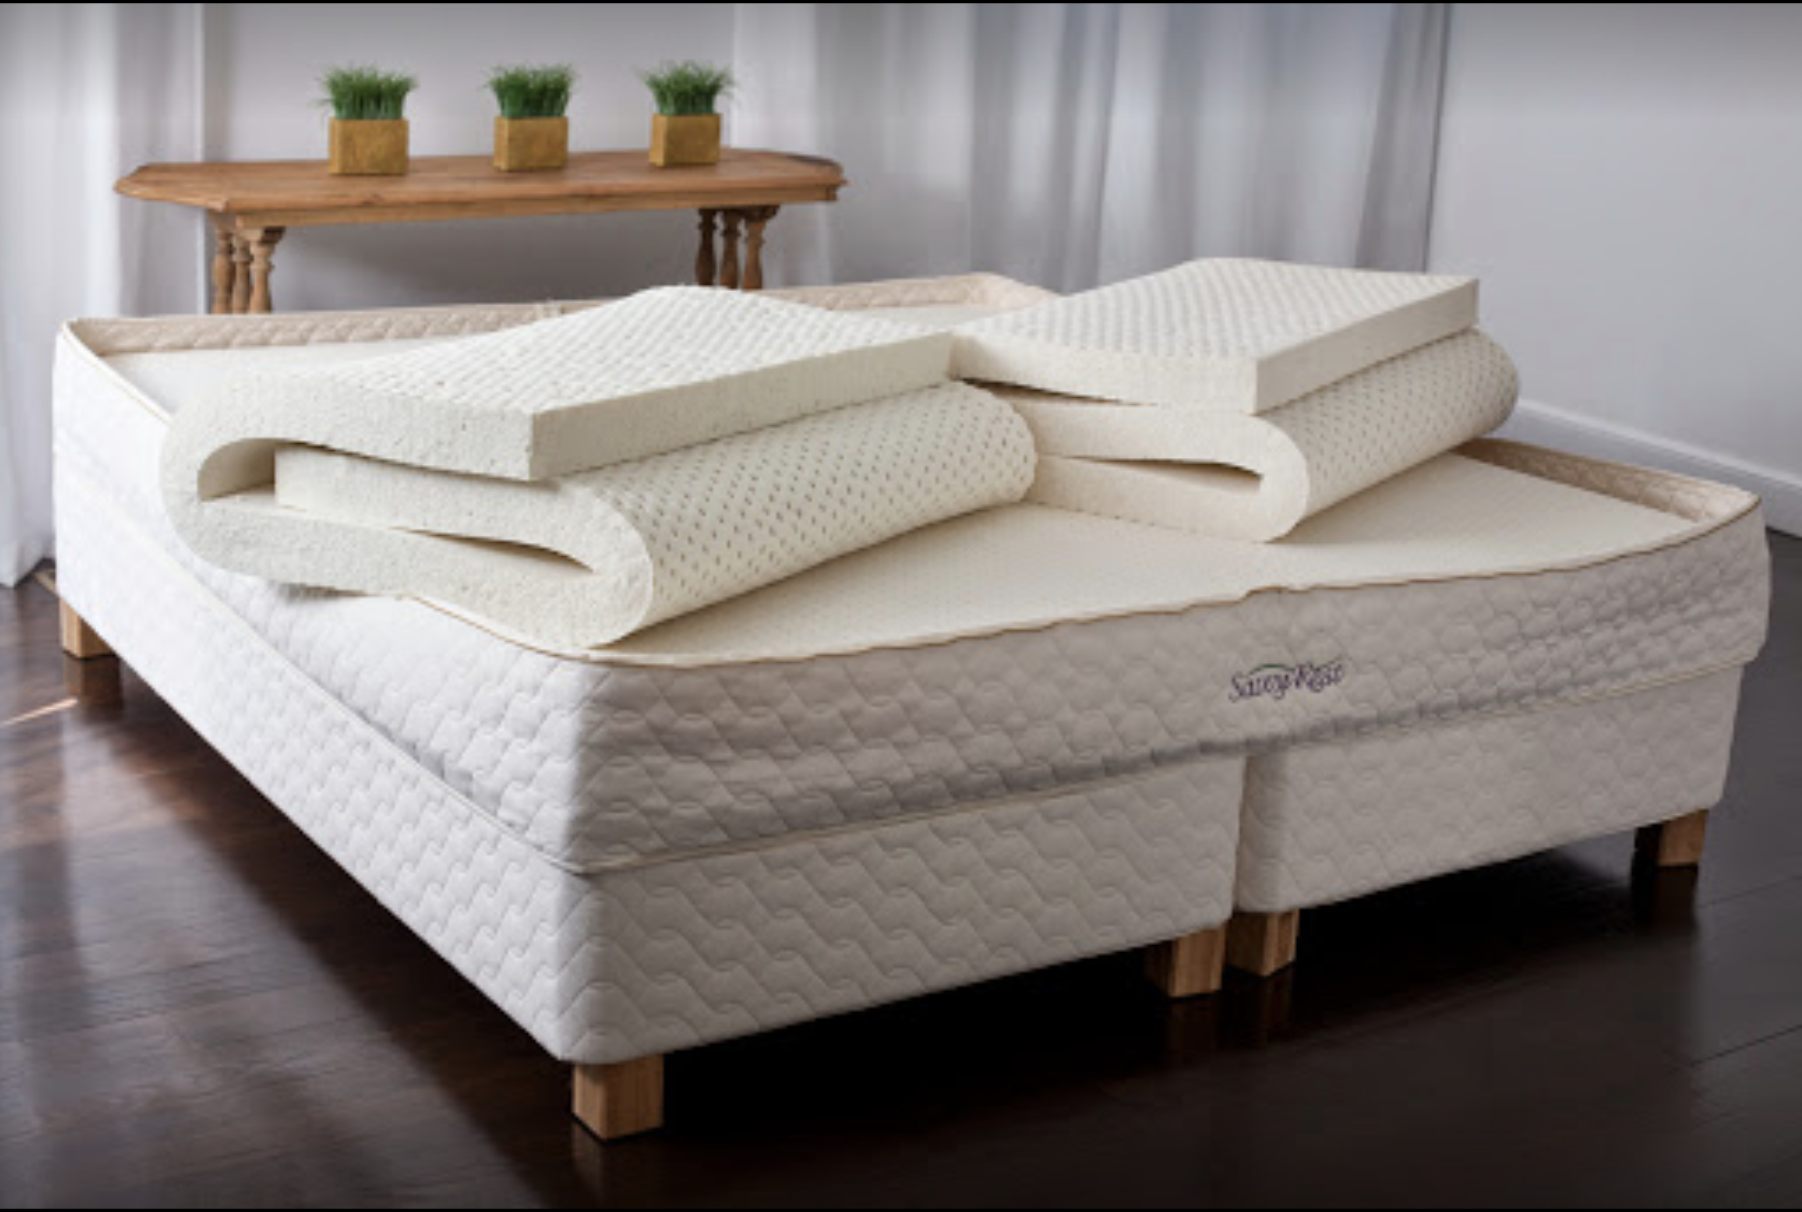 Savvy Rest Natural Bedroom – Natural Talalay Latex Mattress Store In Charlottesville Va